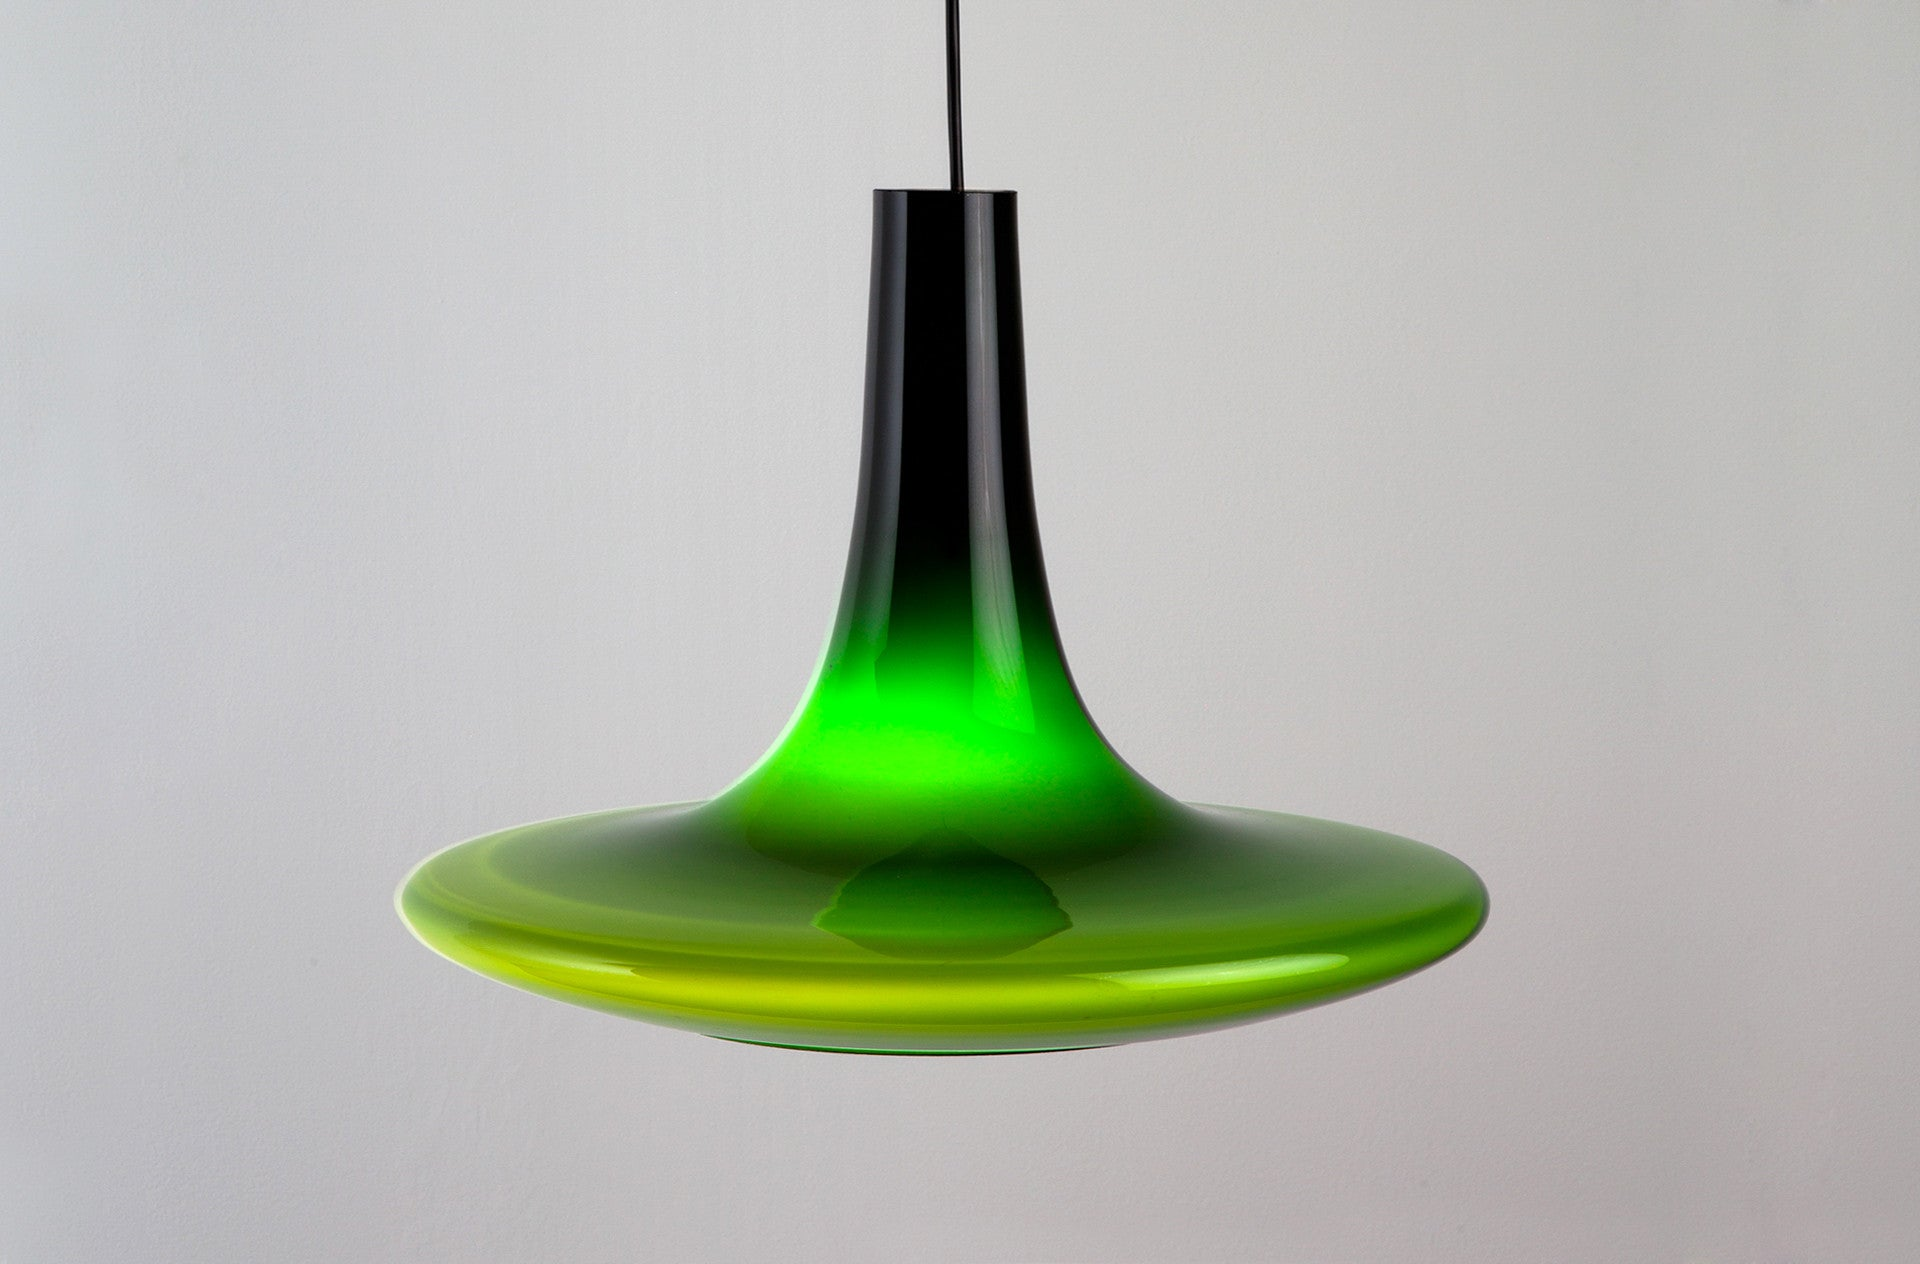 Murano glass pendant by Peill & Putzler